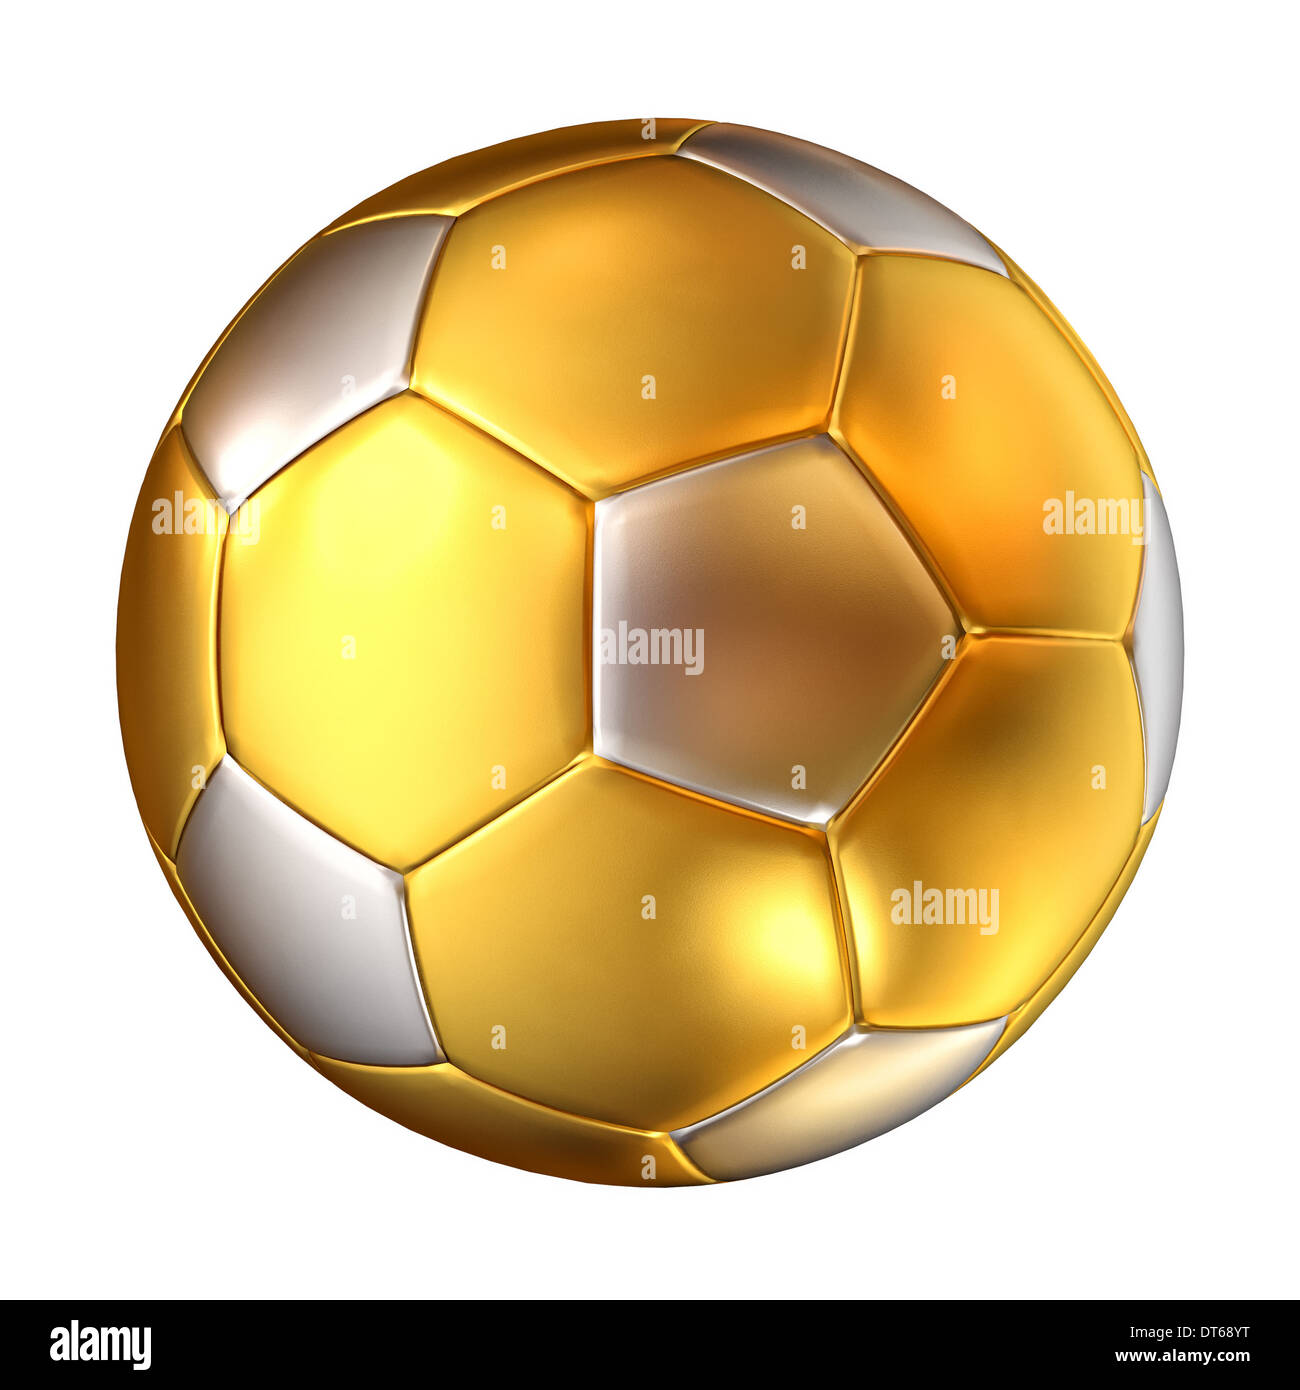 E5 BA 93 E5 AD 98 E5 9B BE E7 89 87  E6 A9 84 E6 A6 84 E6 A0 91 Image31740684 additionally Index further Stock Photo 3d Image Of Gold And Silver Football Ball 66521612 as well Pub kitchen trolley UK moreover Belle Idee. on boffi